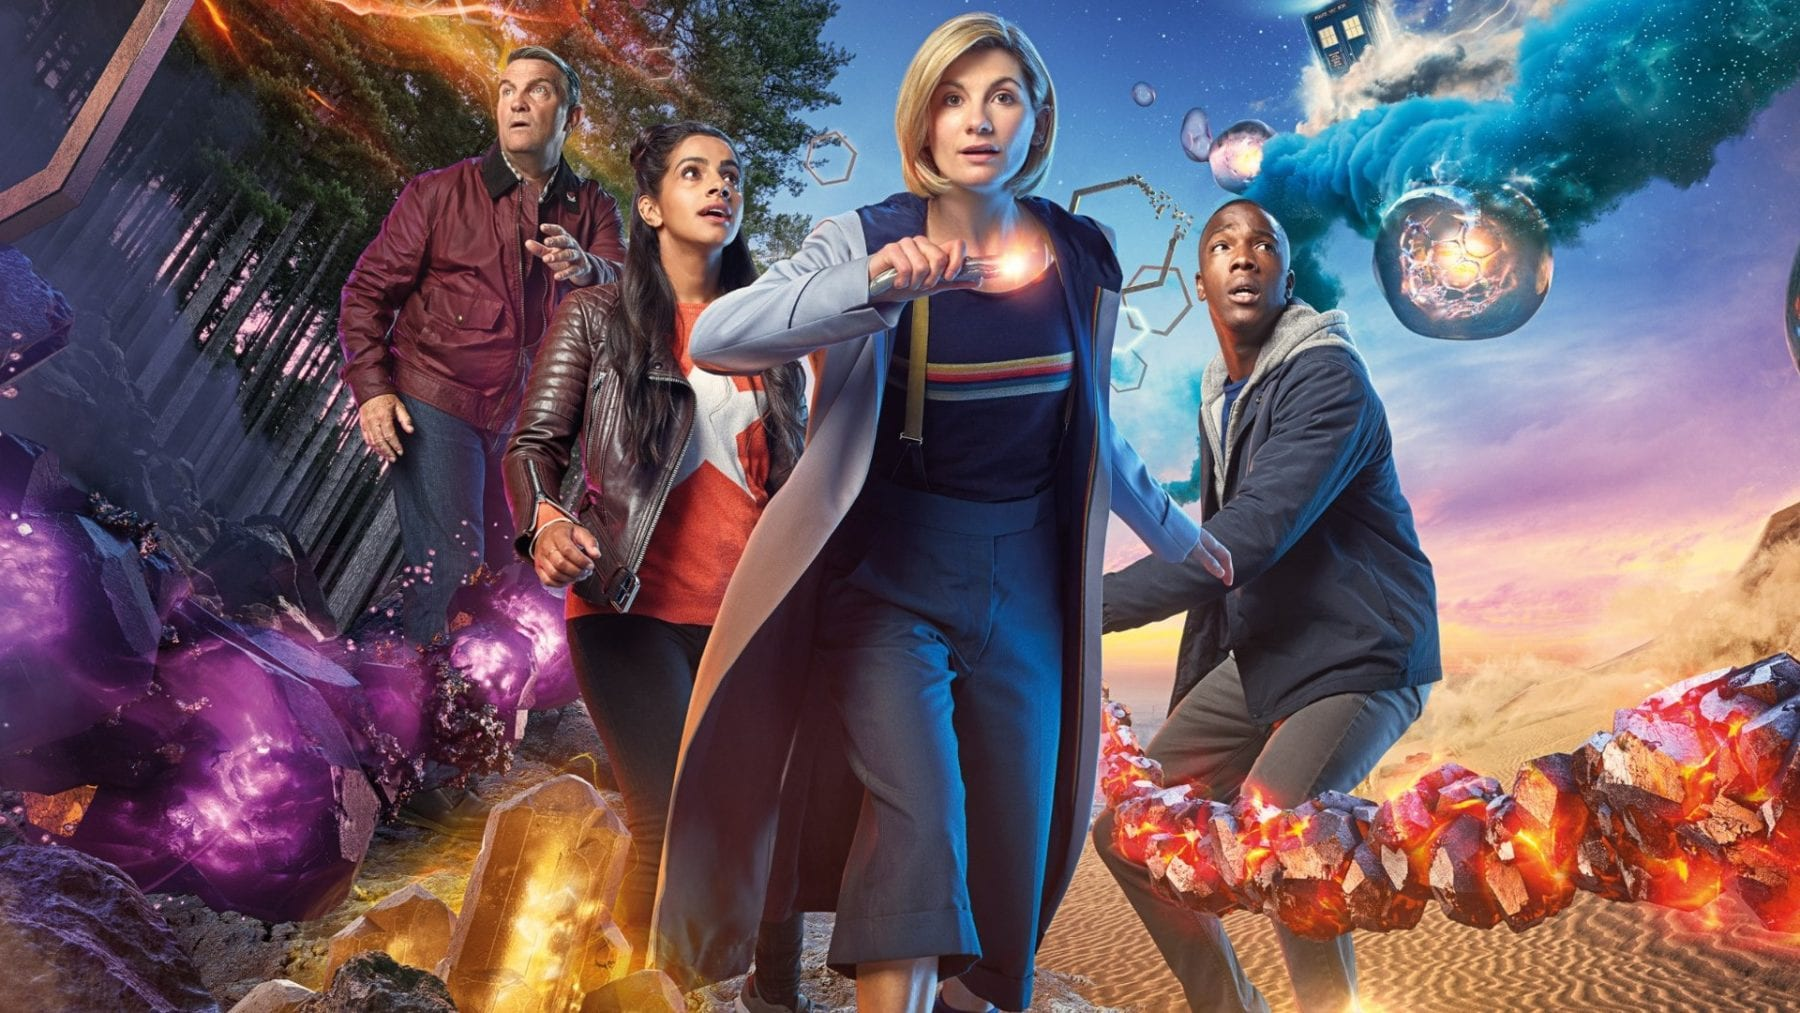 Jodie Whittaker Doctor Who Wallpaper: Exclusive: Doctor Who's Jodie Whittaker On Working With